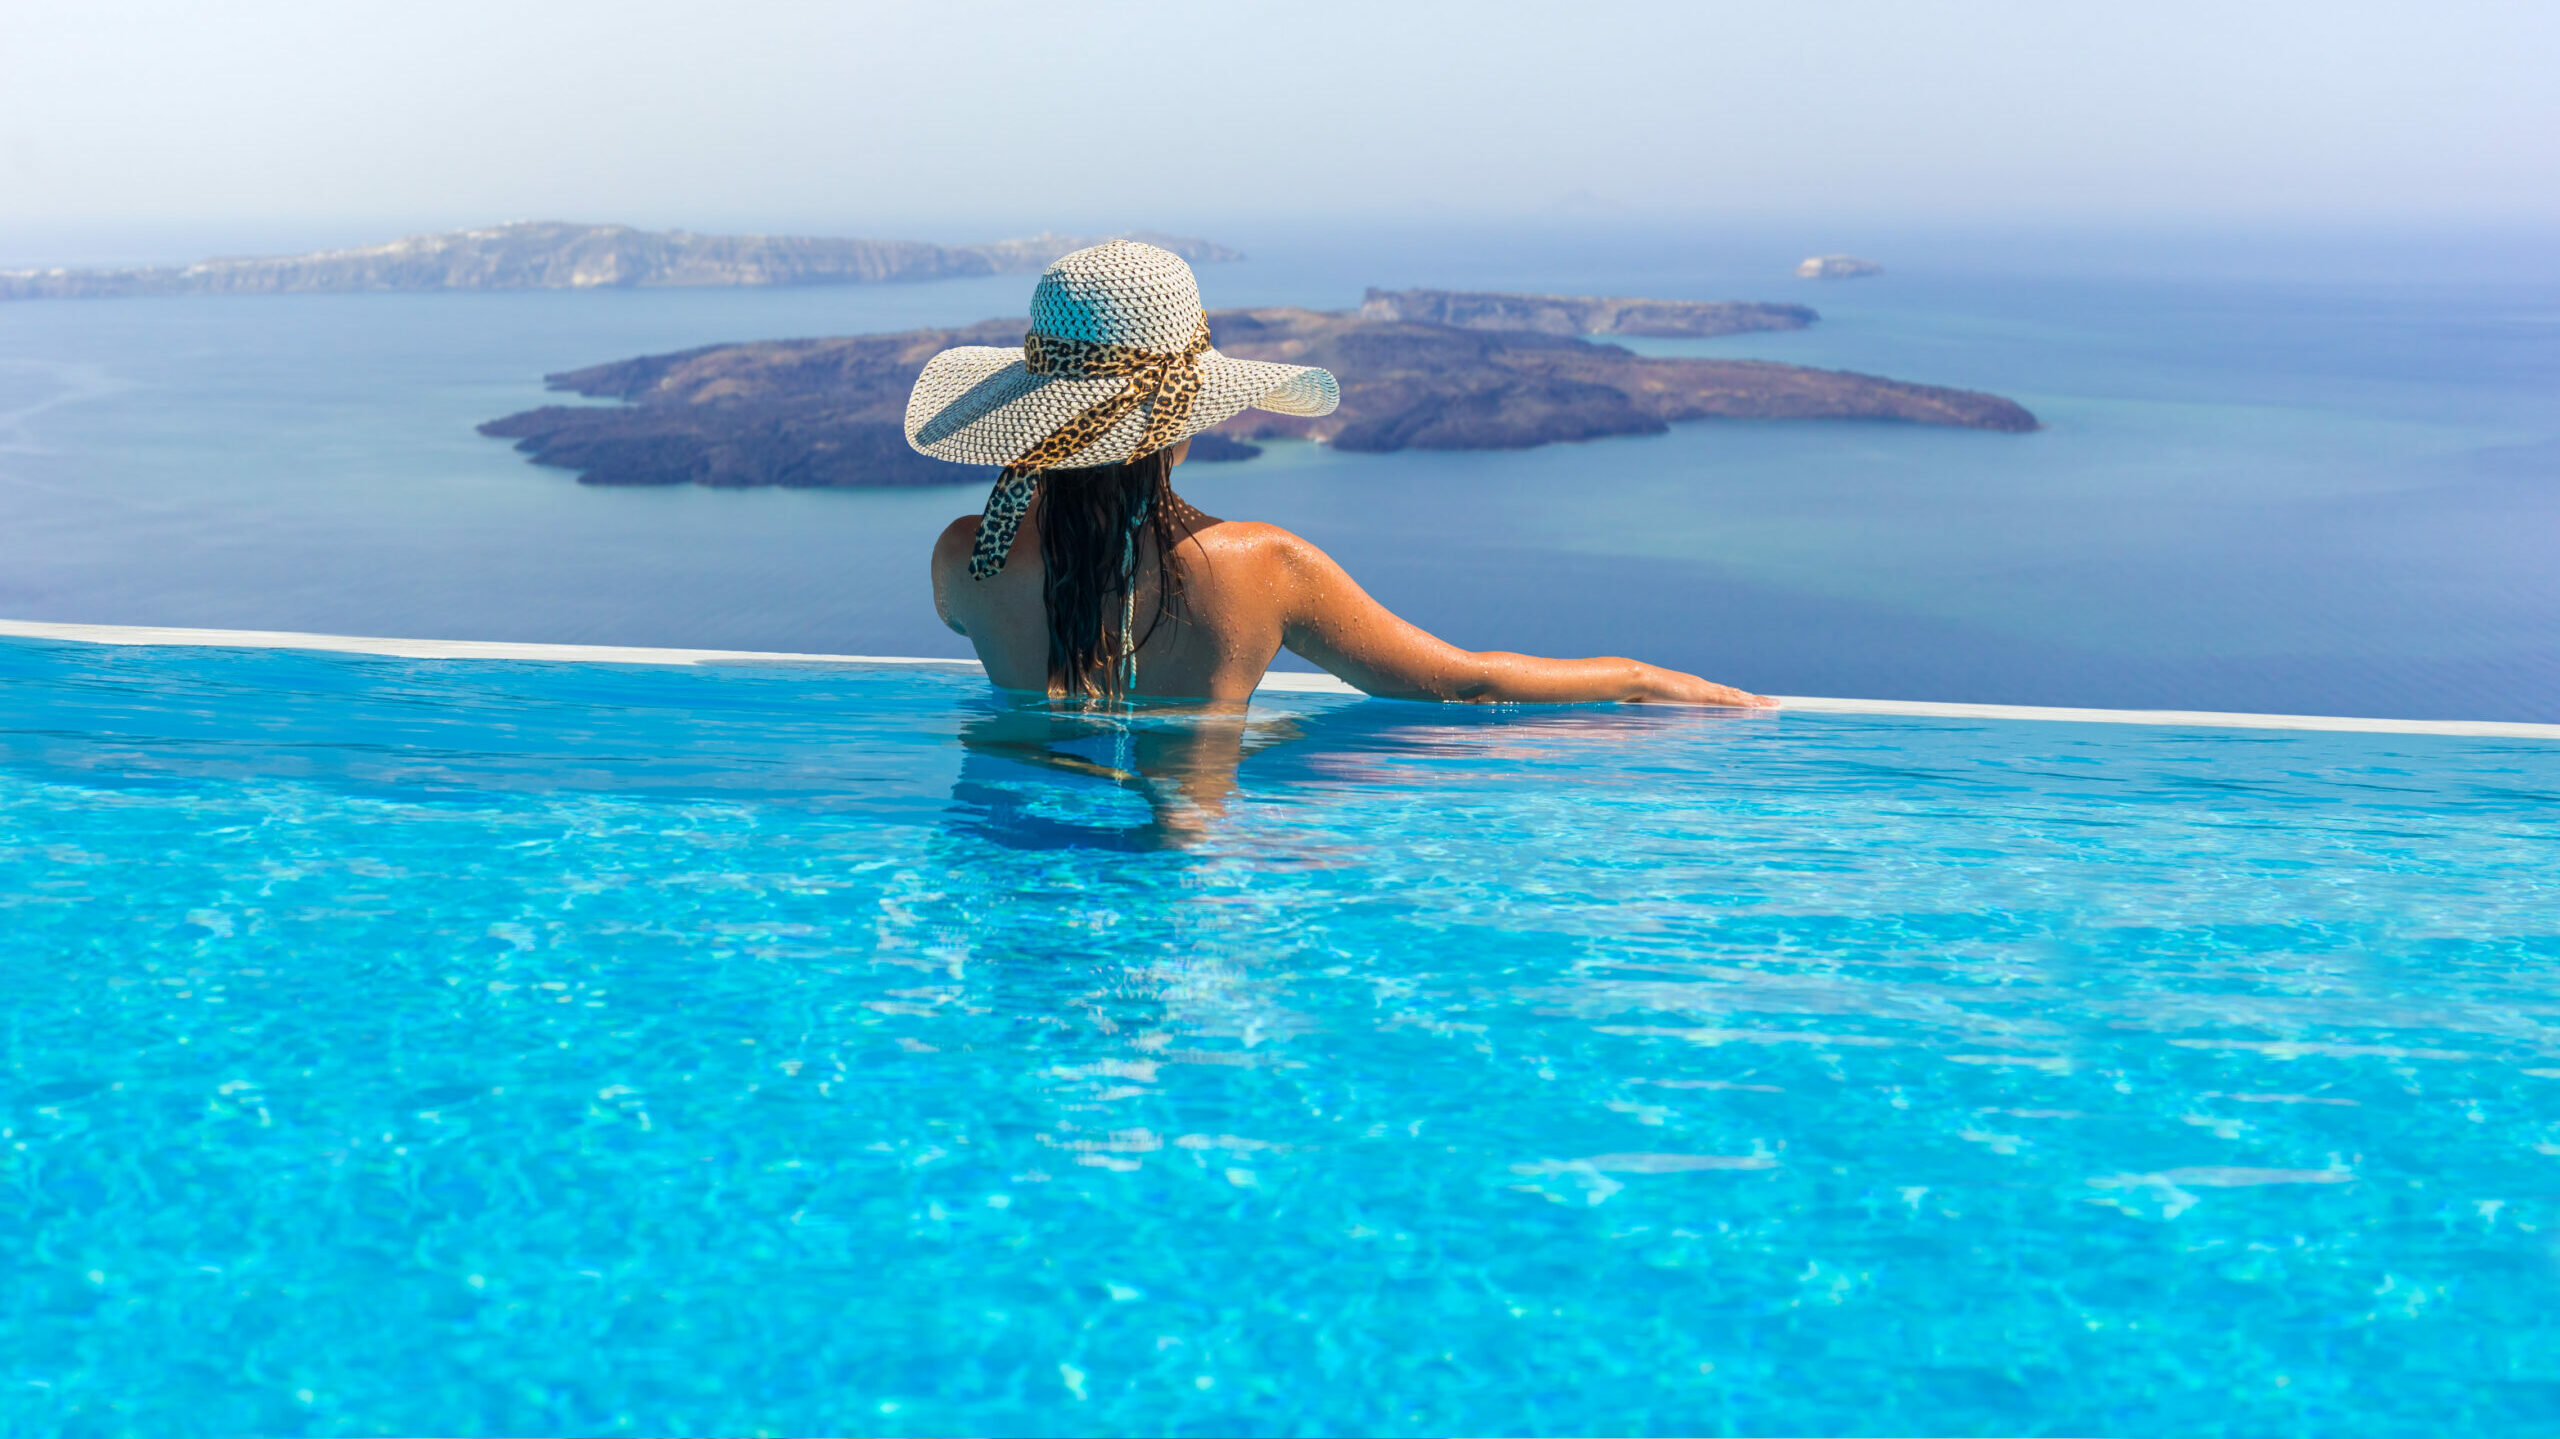 Santorini: The luxurious hotel where you go out on the balcony swimming